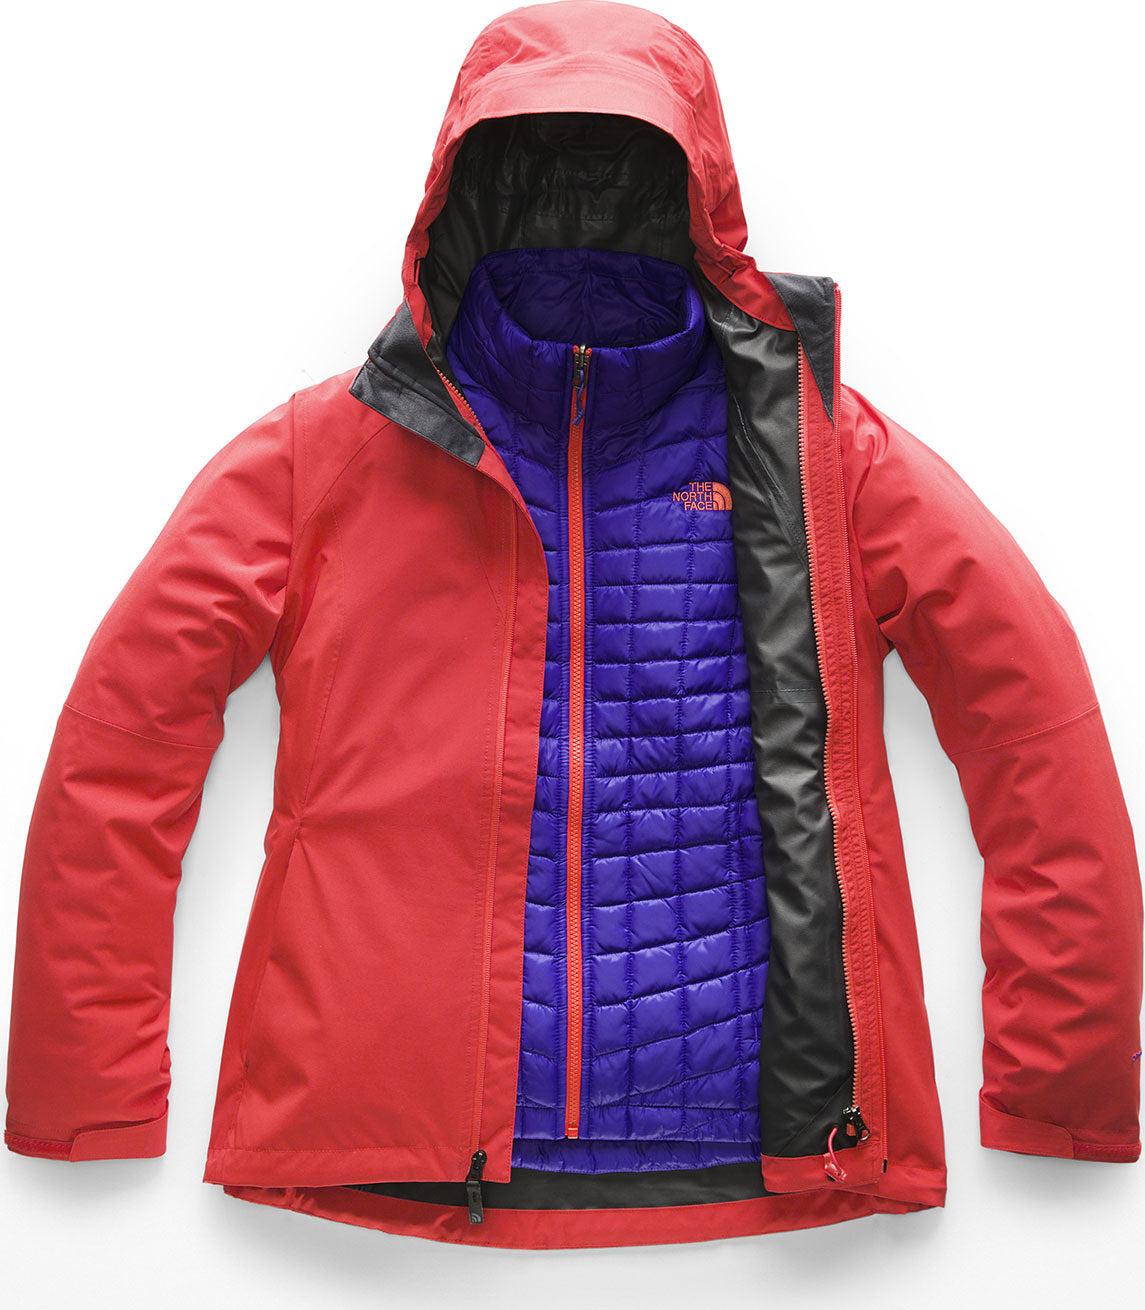 7b0b50e8e5 The North Face Women's Thermoball Triclimate Jacket | Altitude Sports